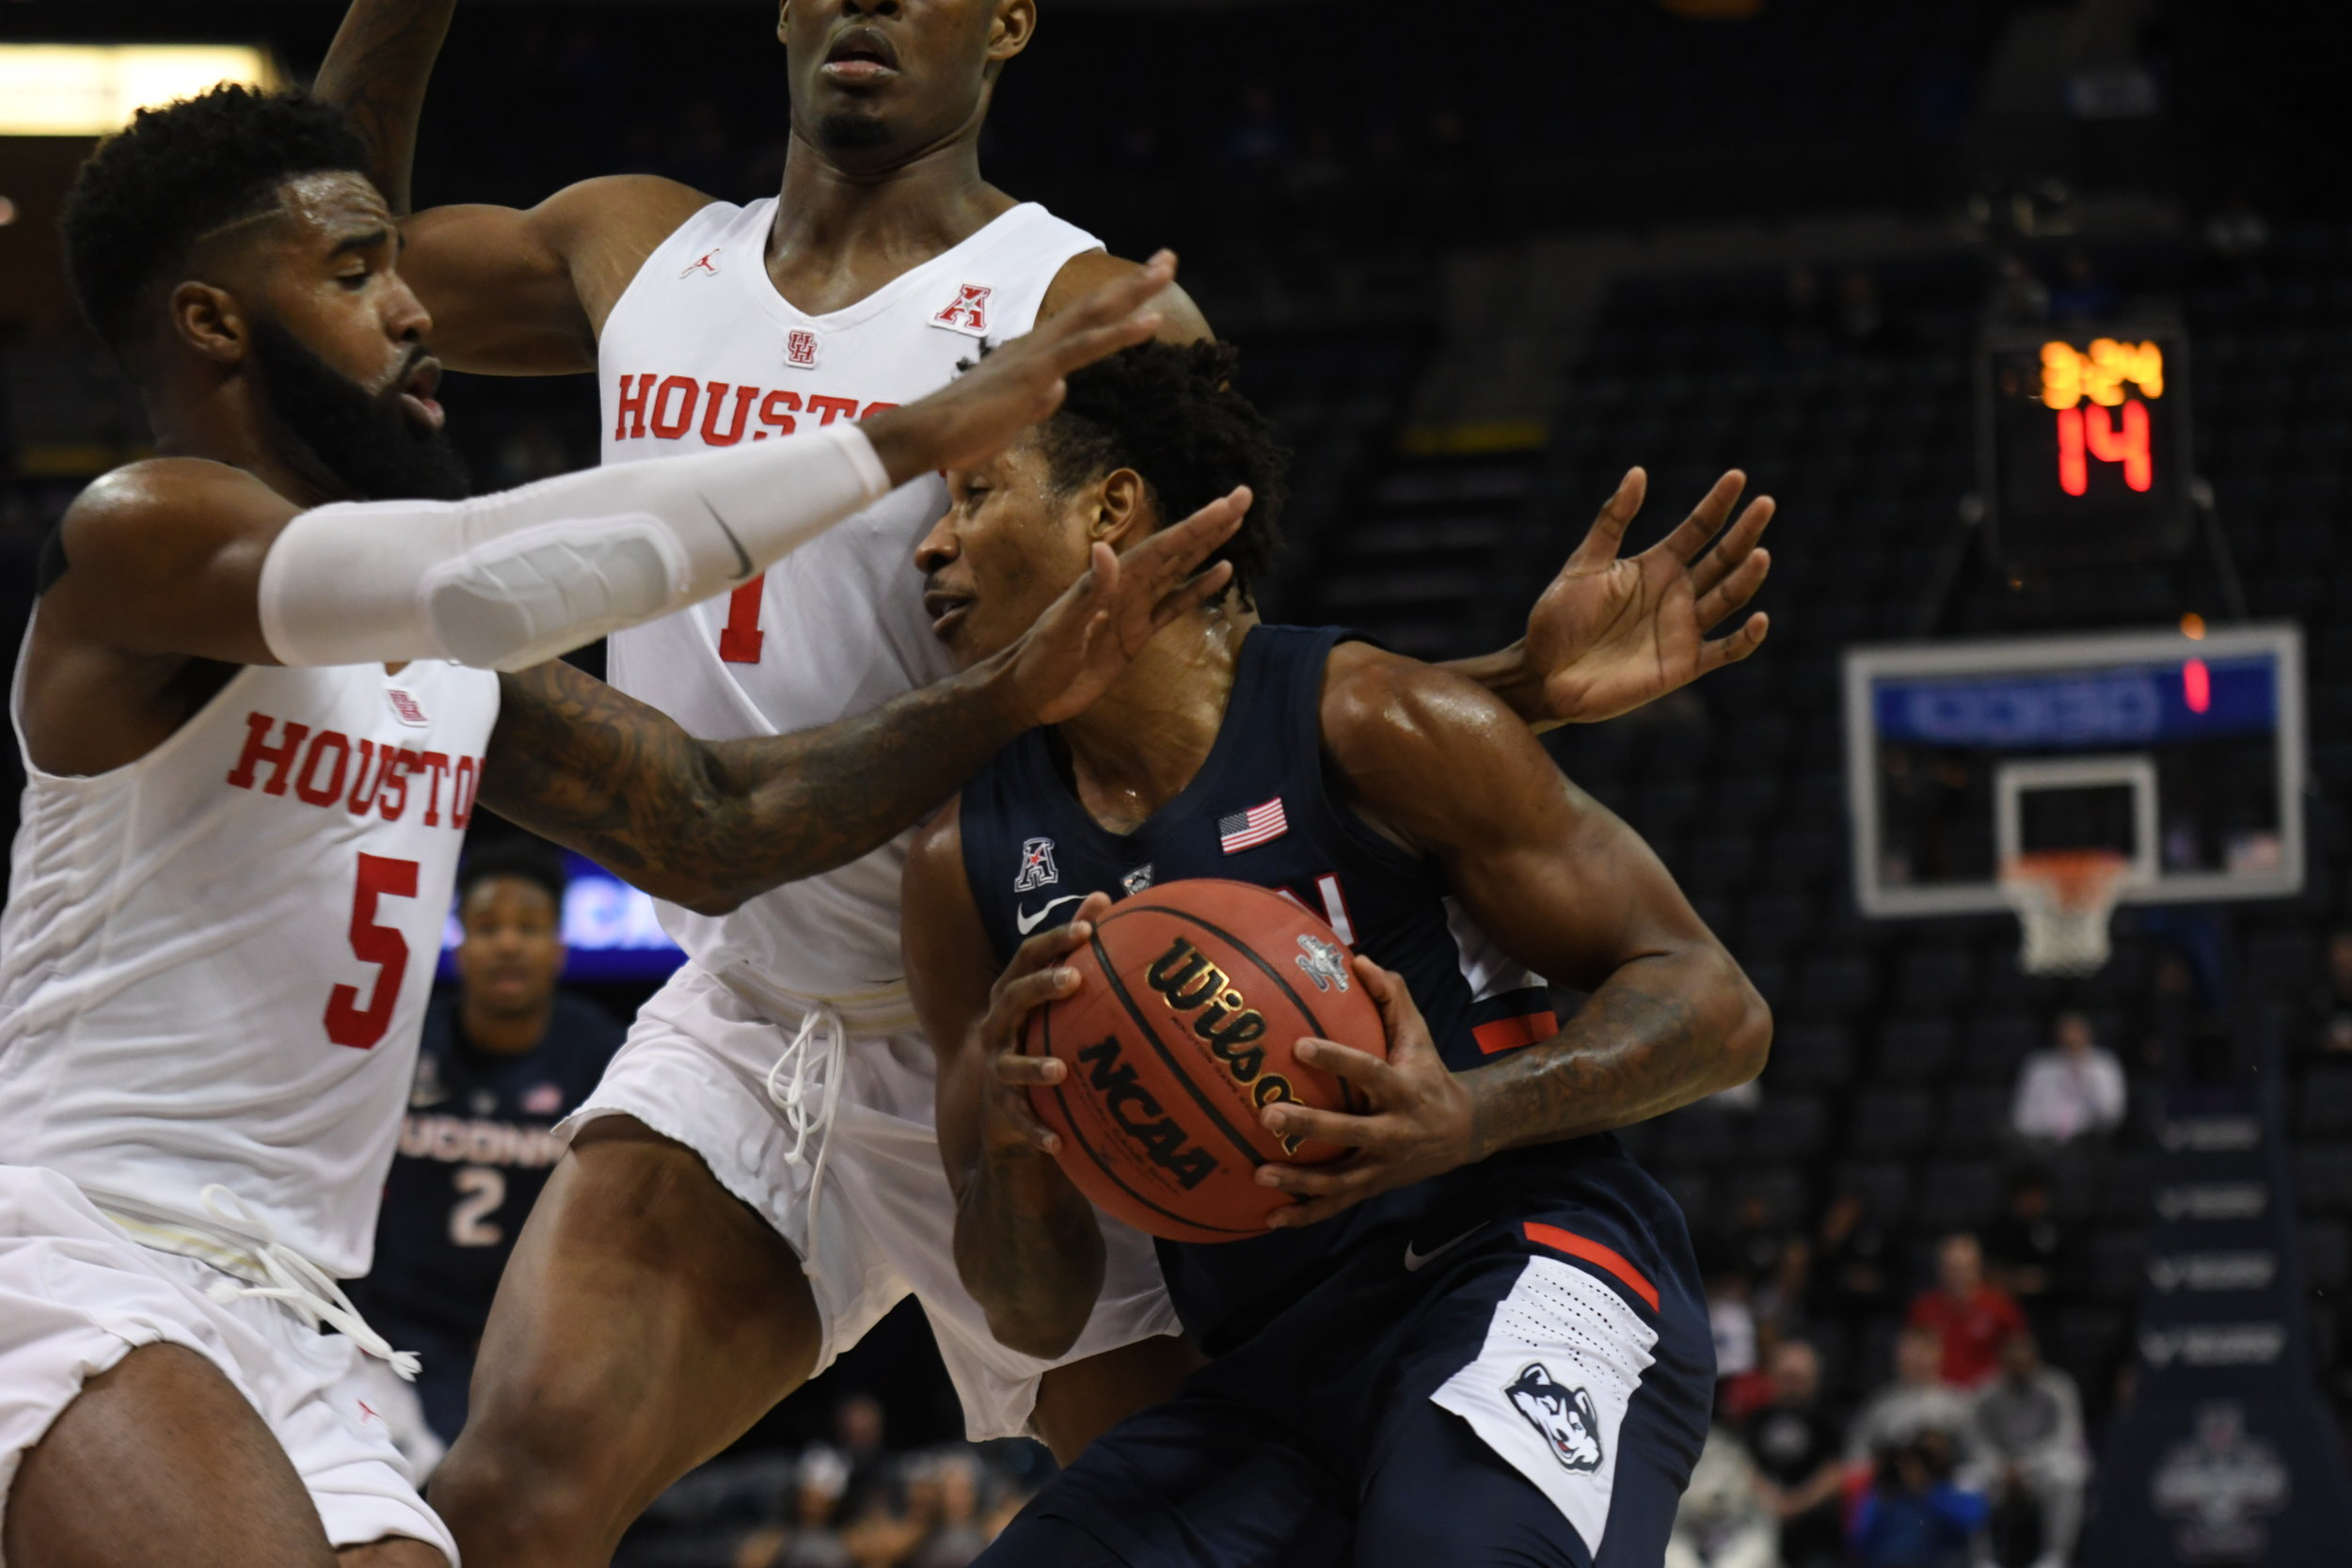 Christian Vital plows through two Houston defenders in UConn's 85-45 loss to Houston in the quarterfinals of the American Athletic Conference Tournament on Friday, March 15 in Memphis, Tenn. (Judah Shingleton/The Daily Campus)